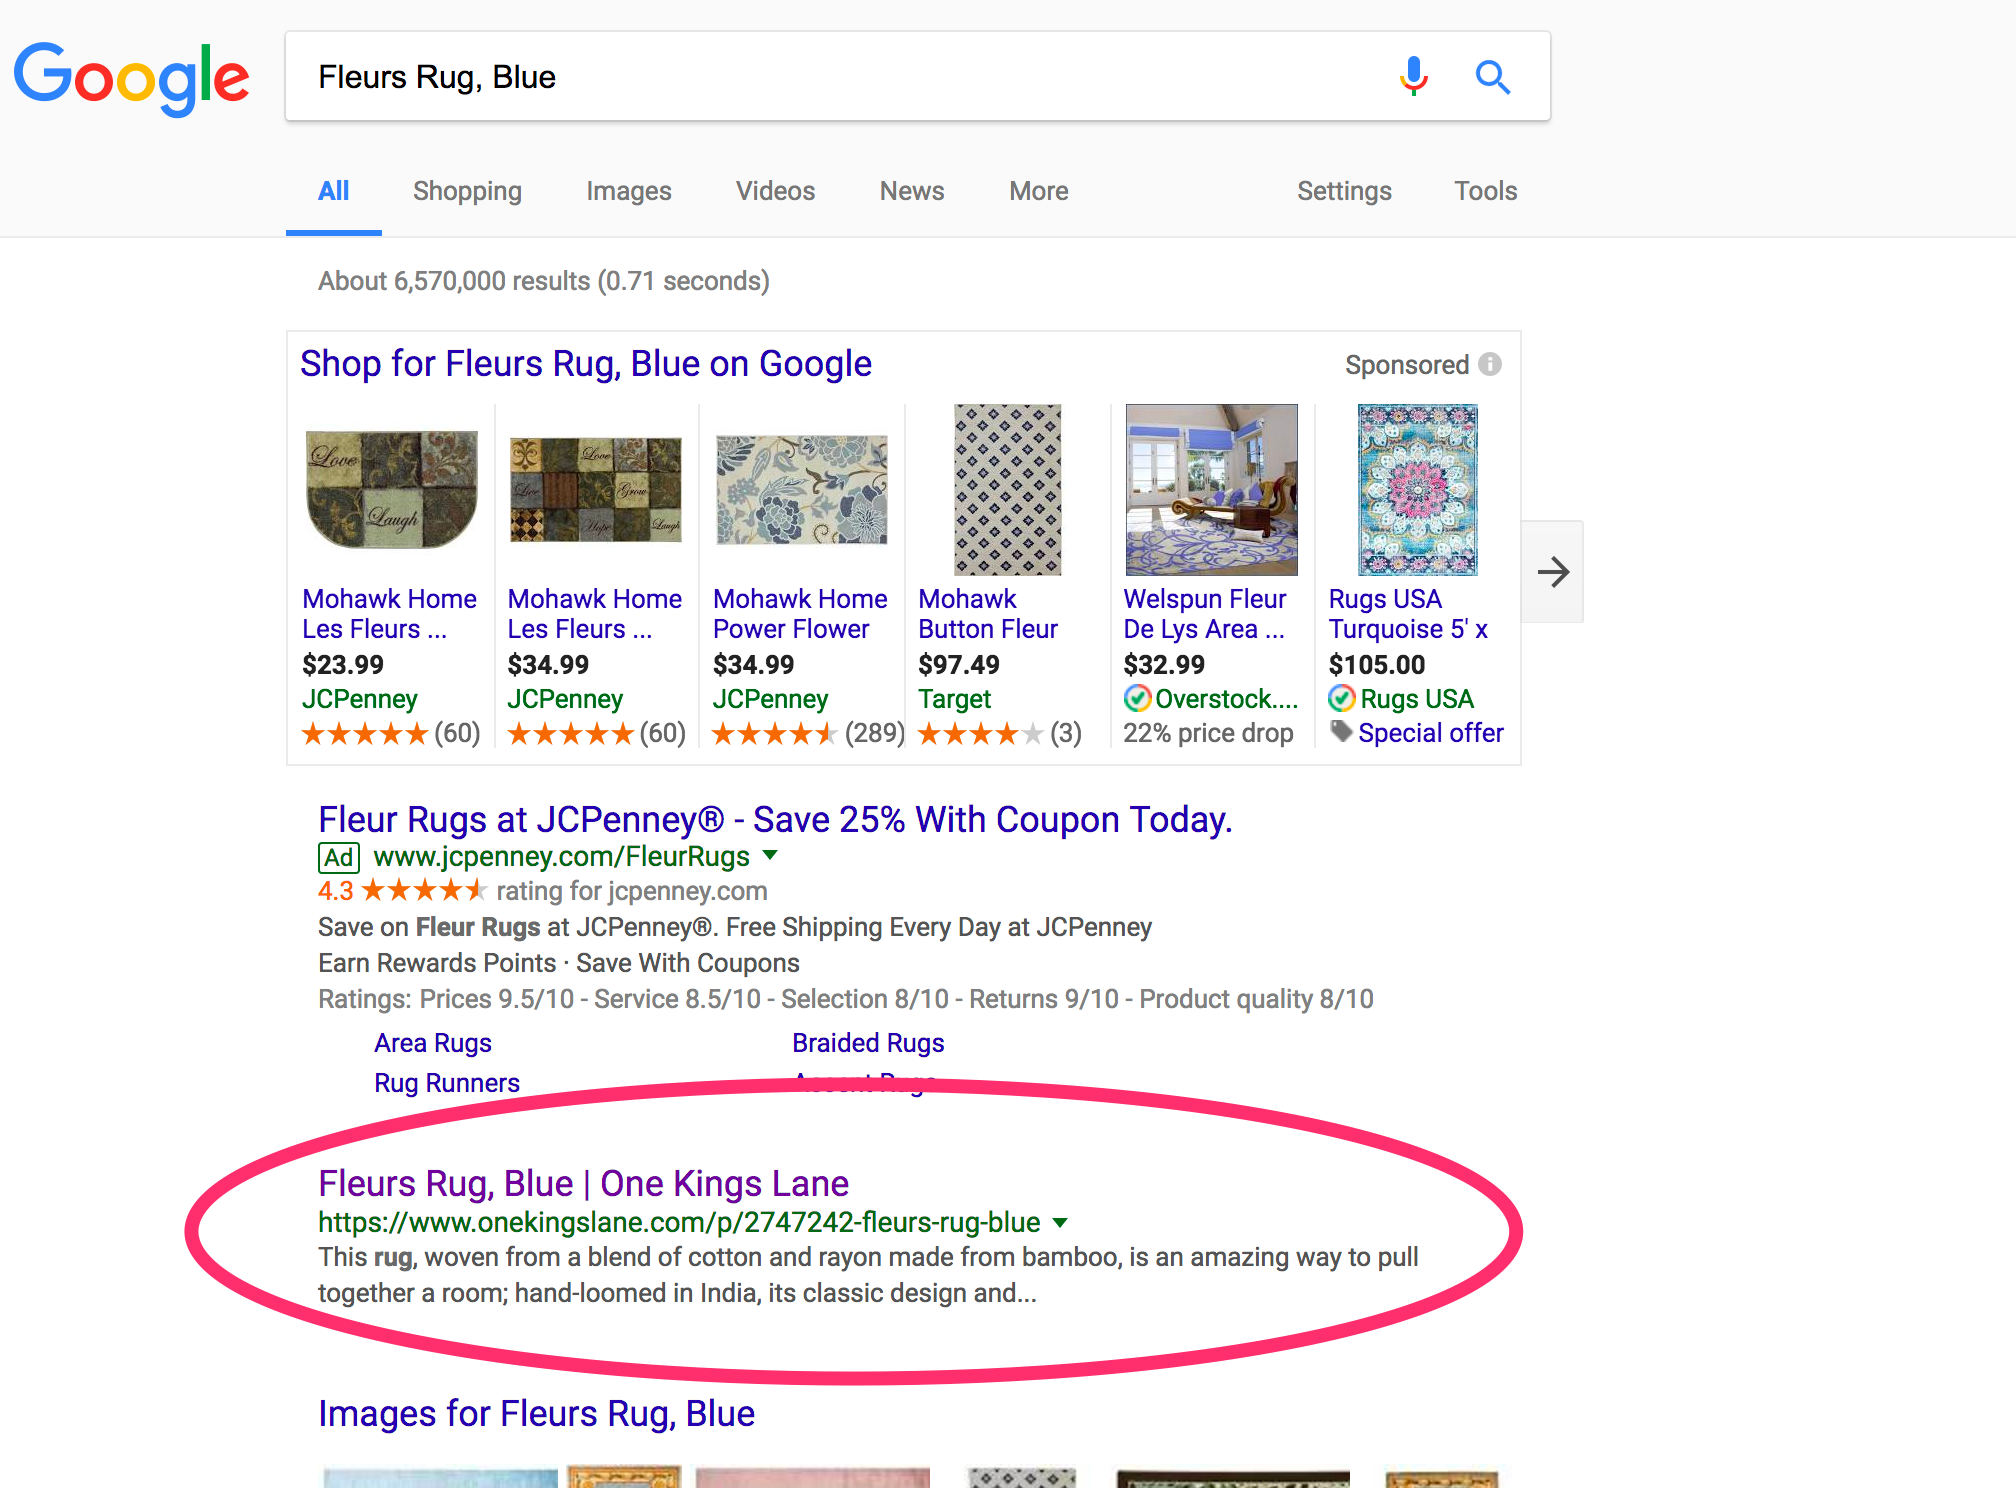 """One Kings Lane has a top rank on Google for """"Fleurs Rug, Blue"""" despite not having canonical tags."""